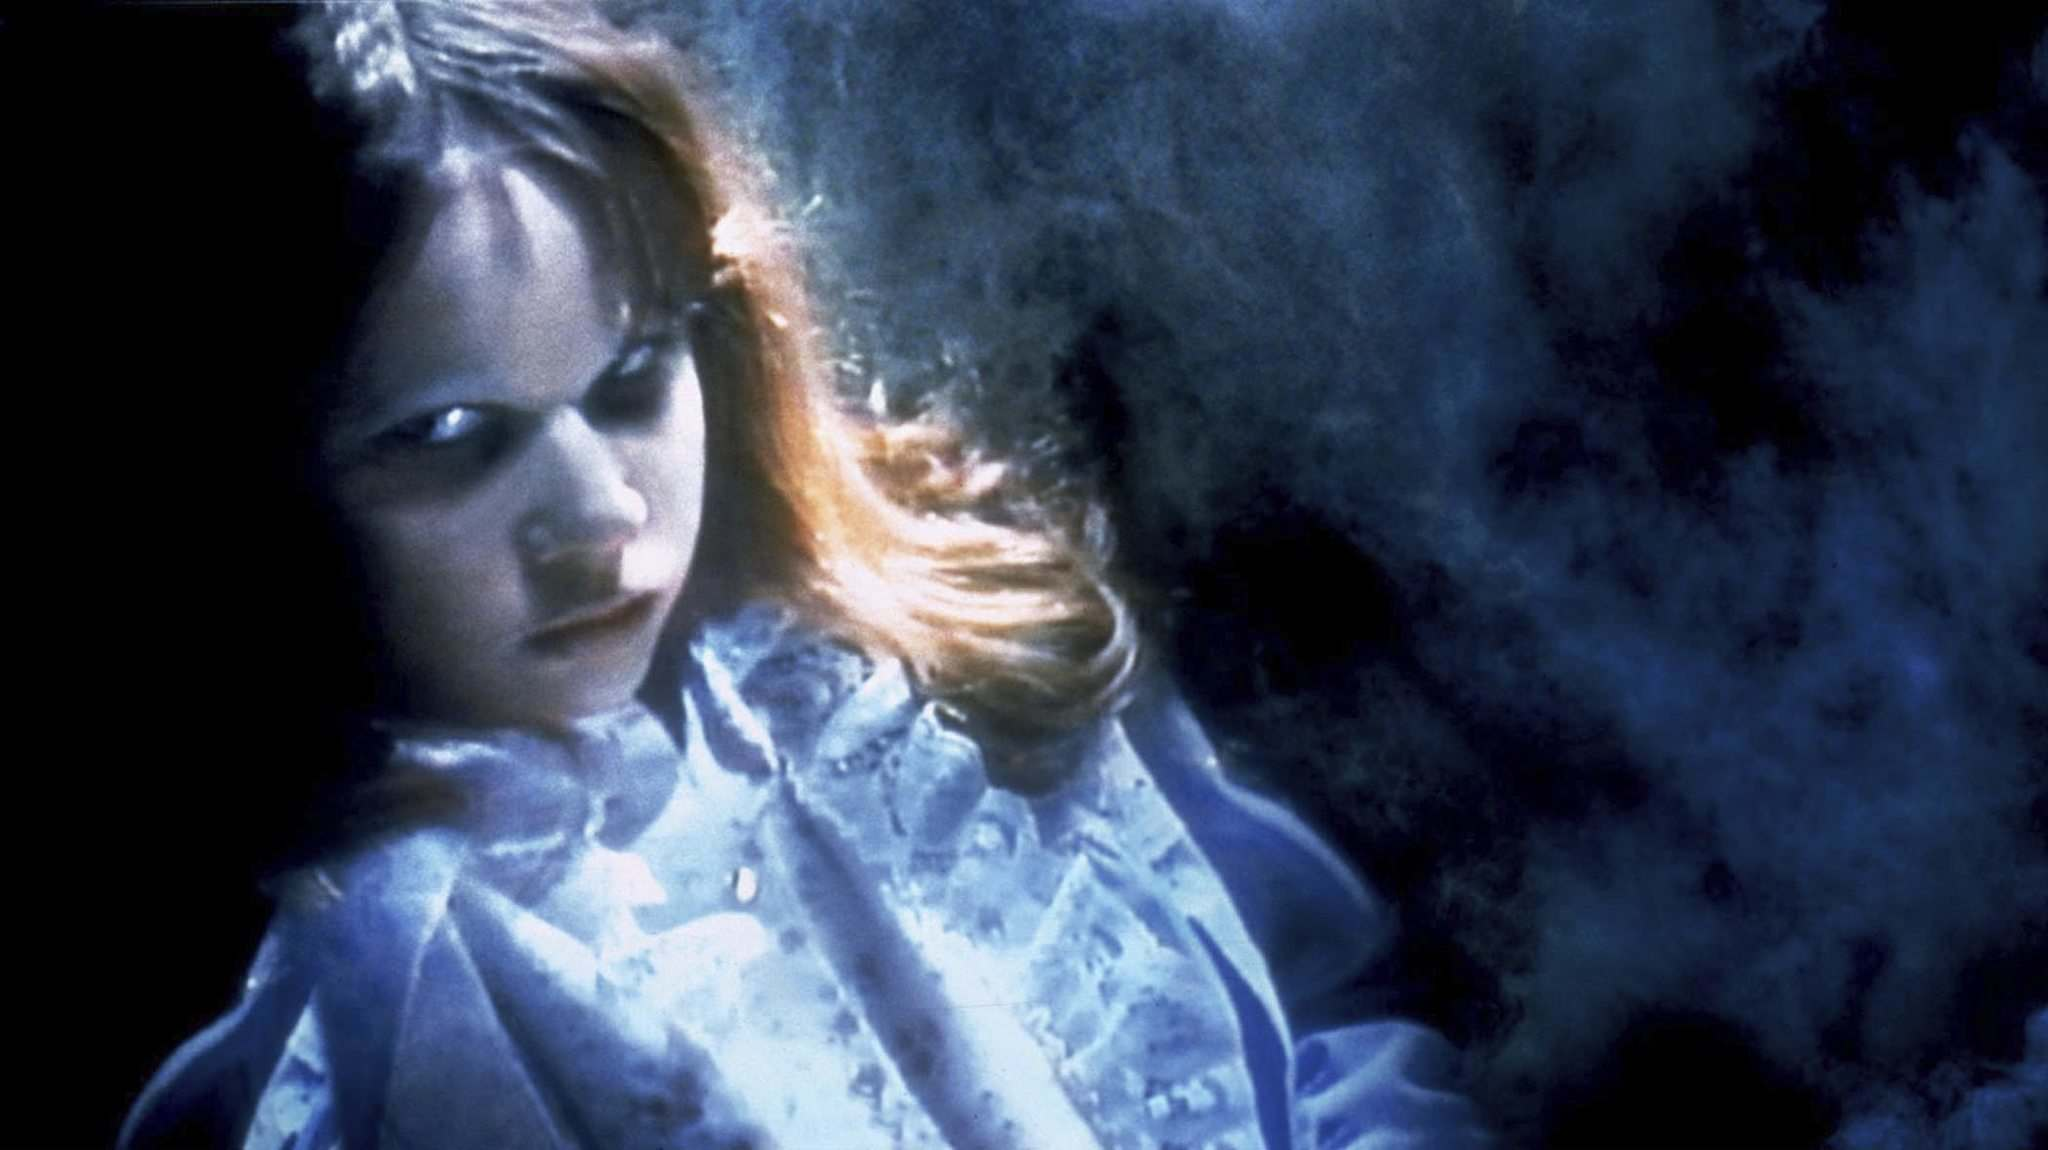 Linda Blair portrays a possessed Regan MacNeil in aThe Exorcist.